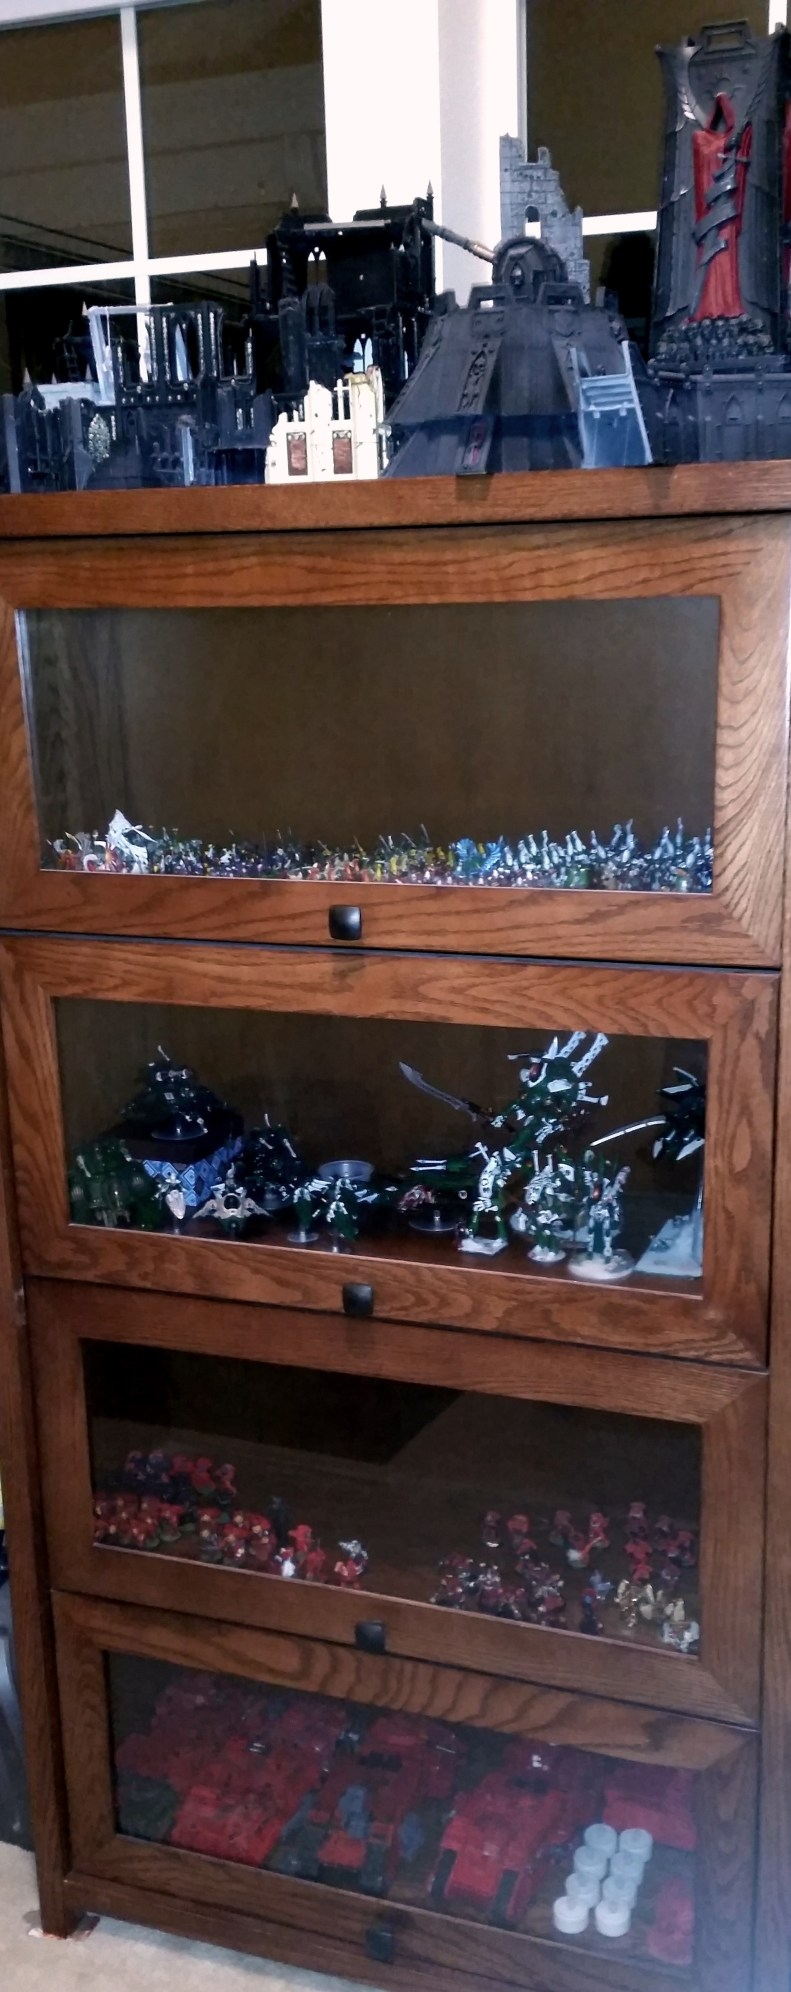 A Lawyer's Bookcase Full of Eldar and Blood Angels